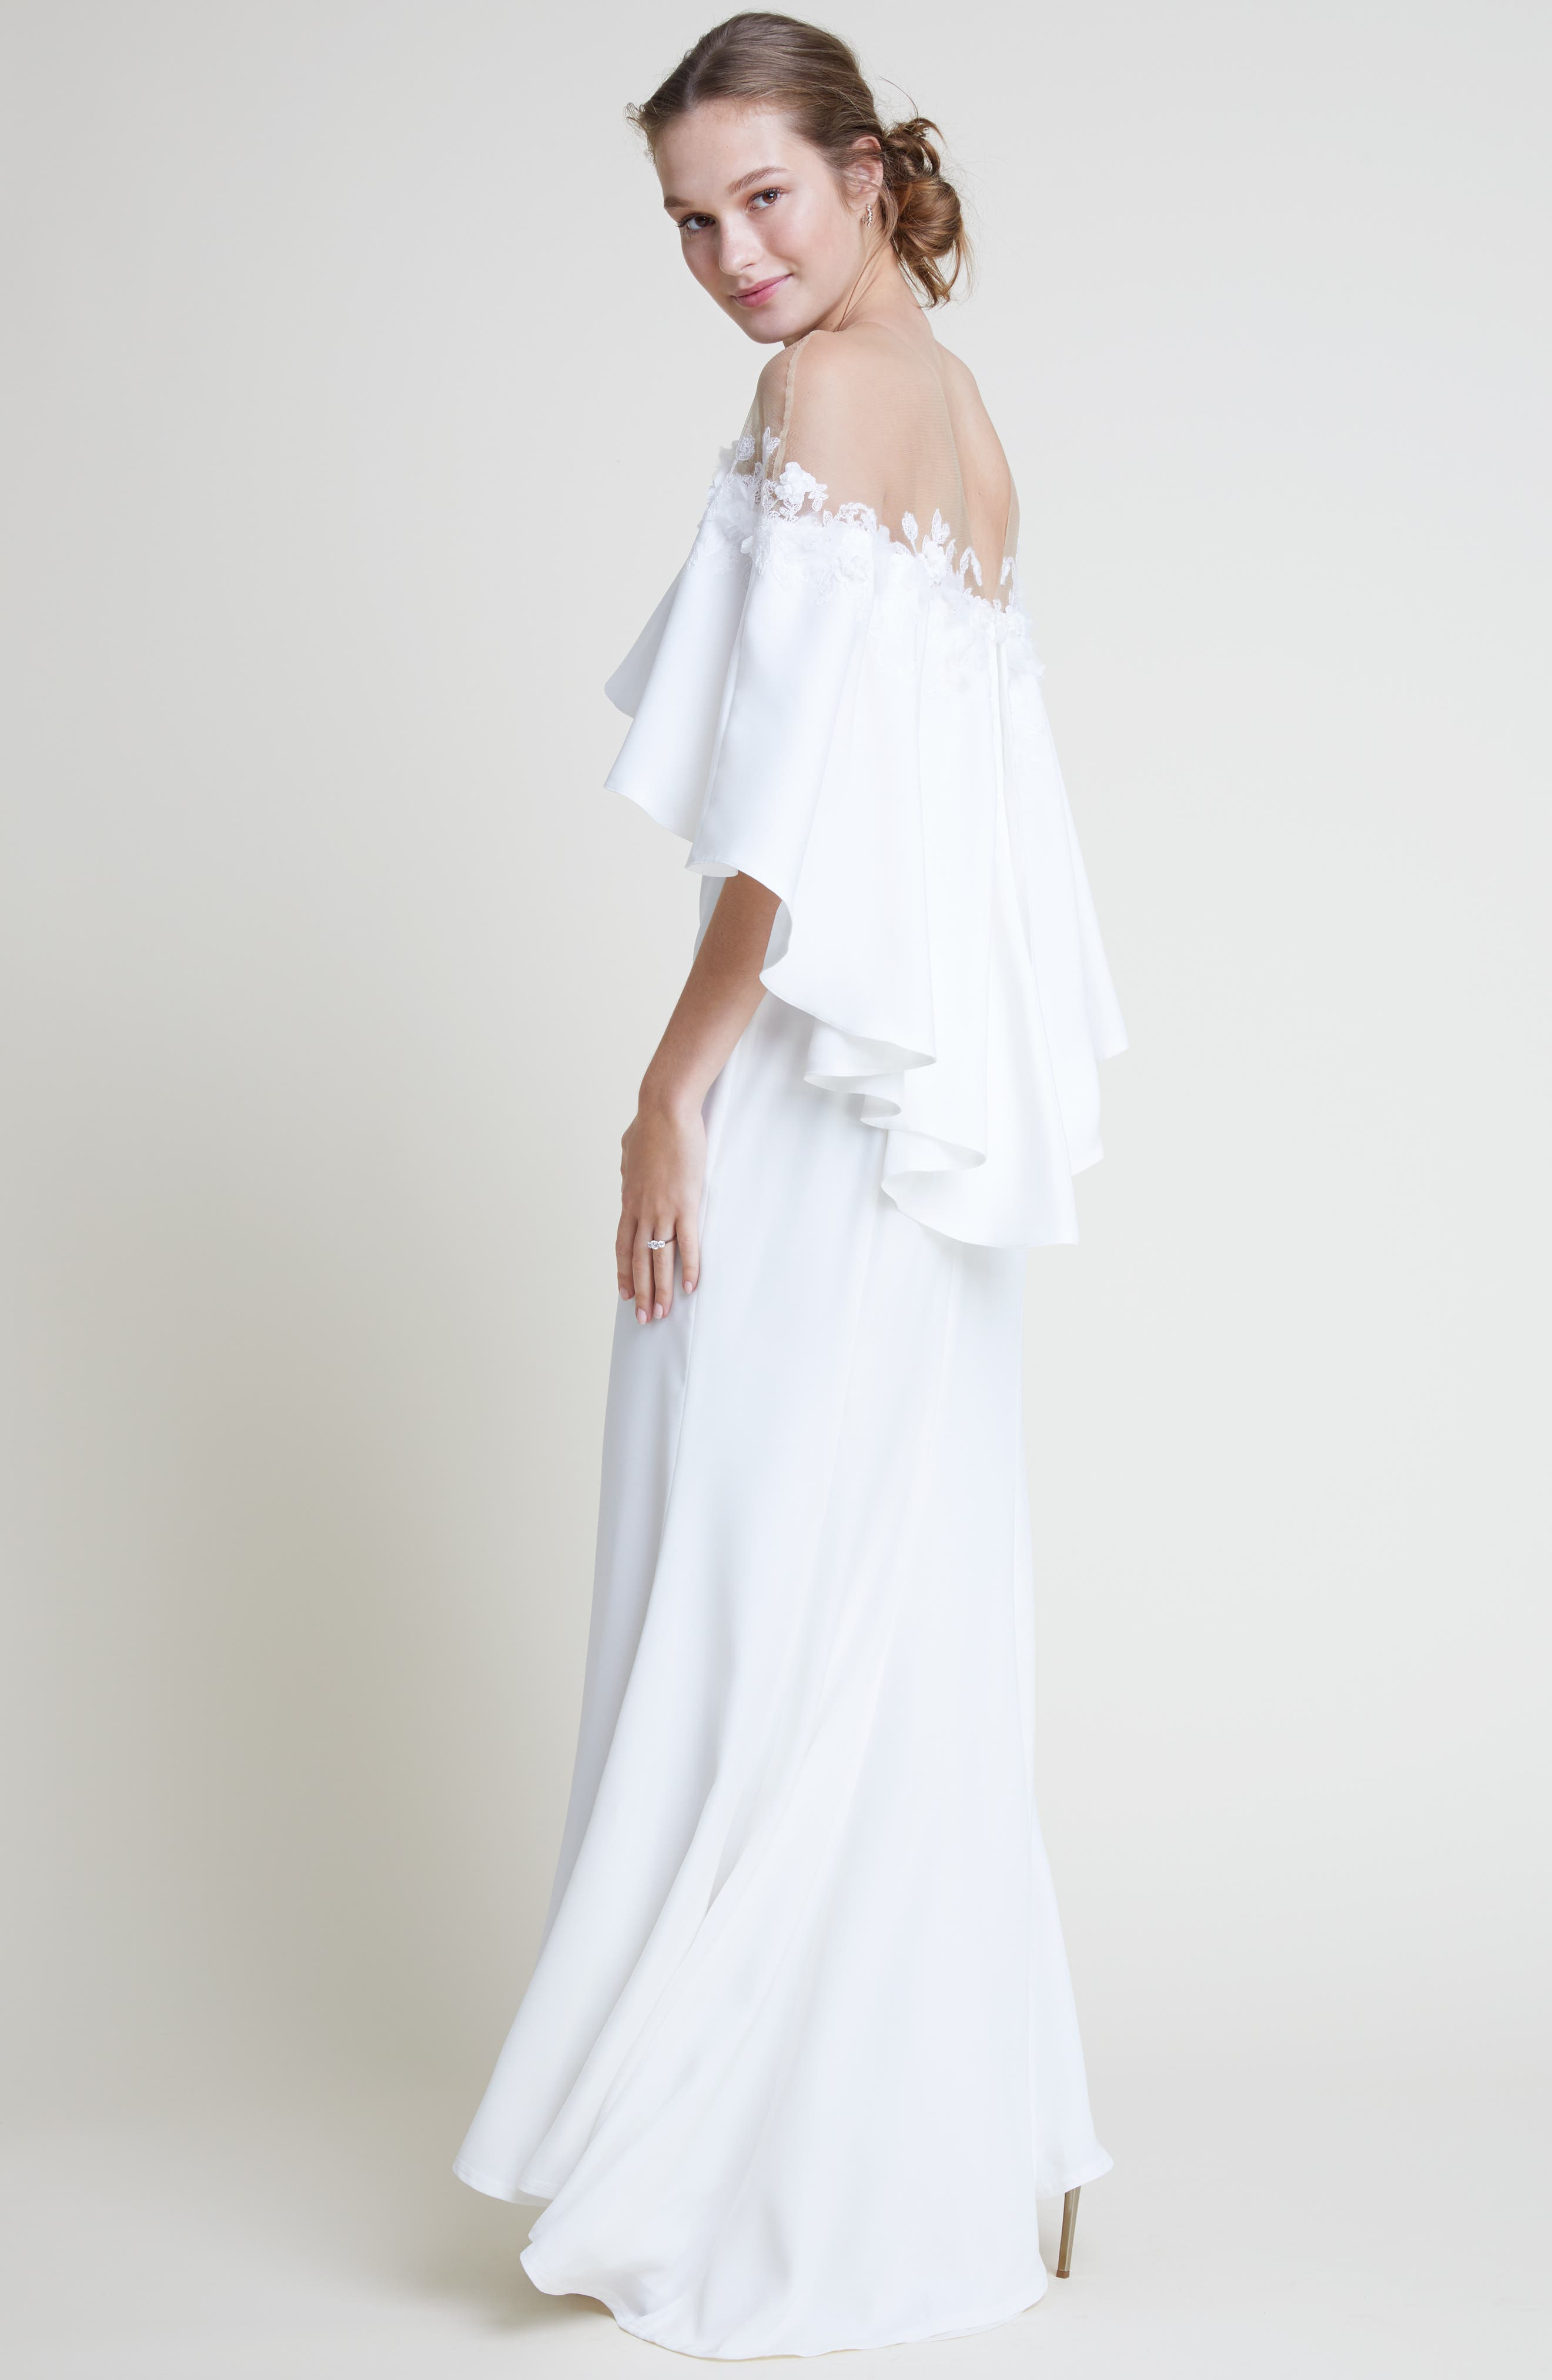 Off the Shoulder Popover Gown,                             Alternate thumbnail 10, color,                             IVORY